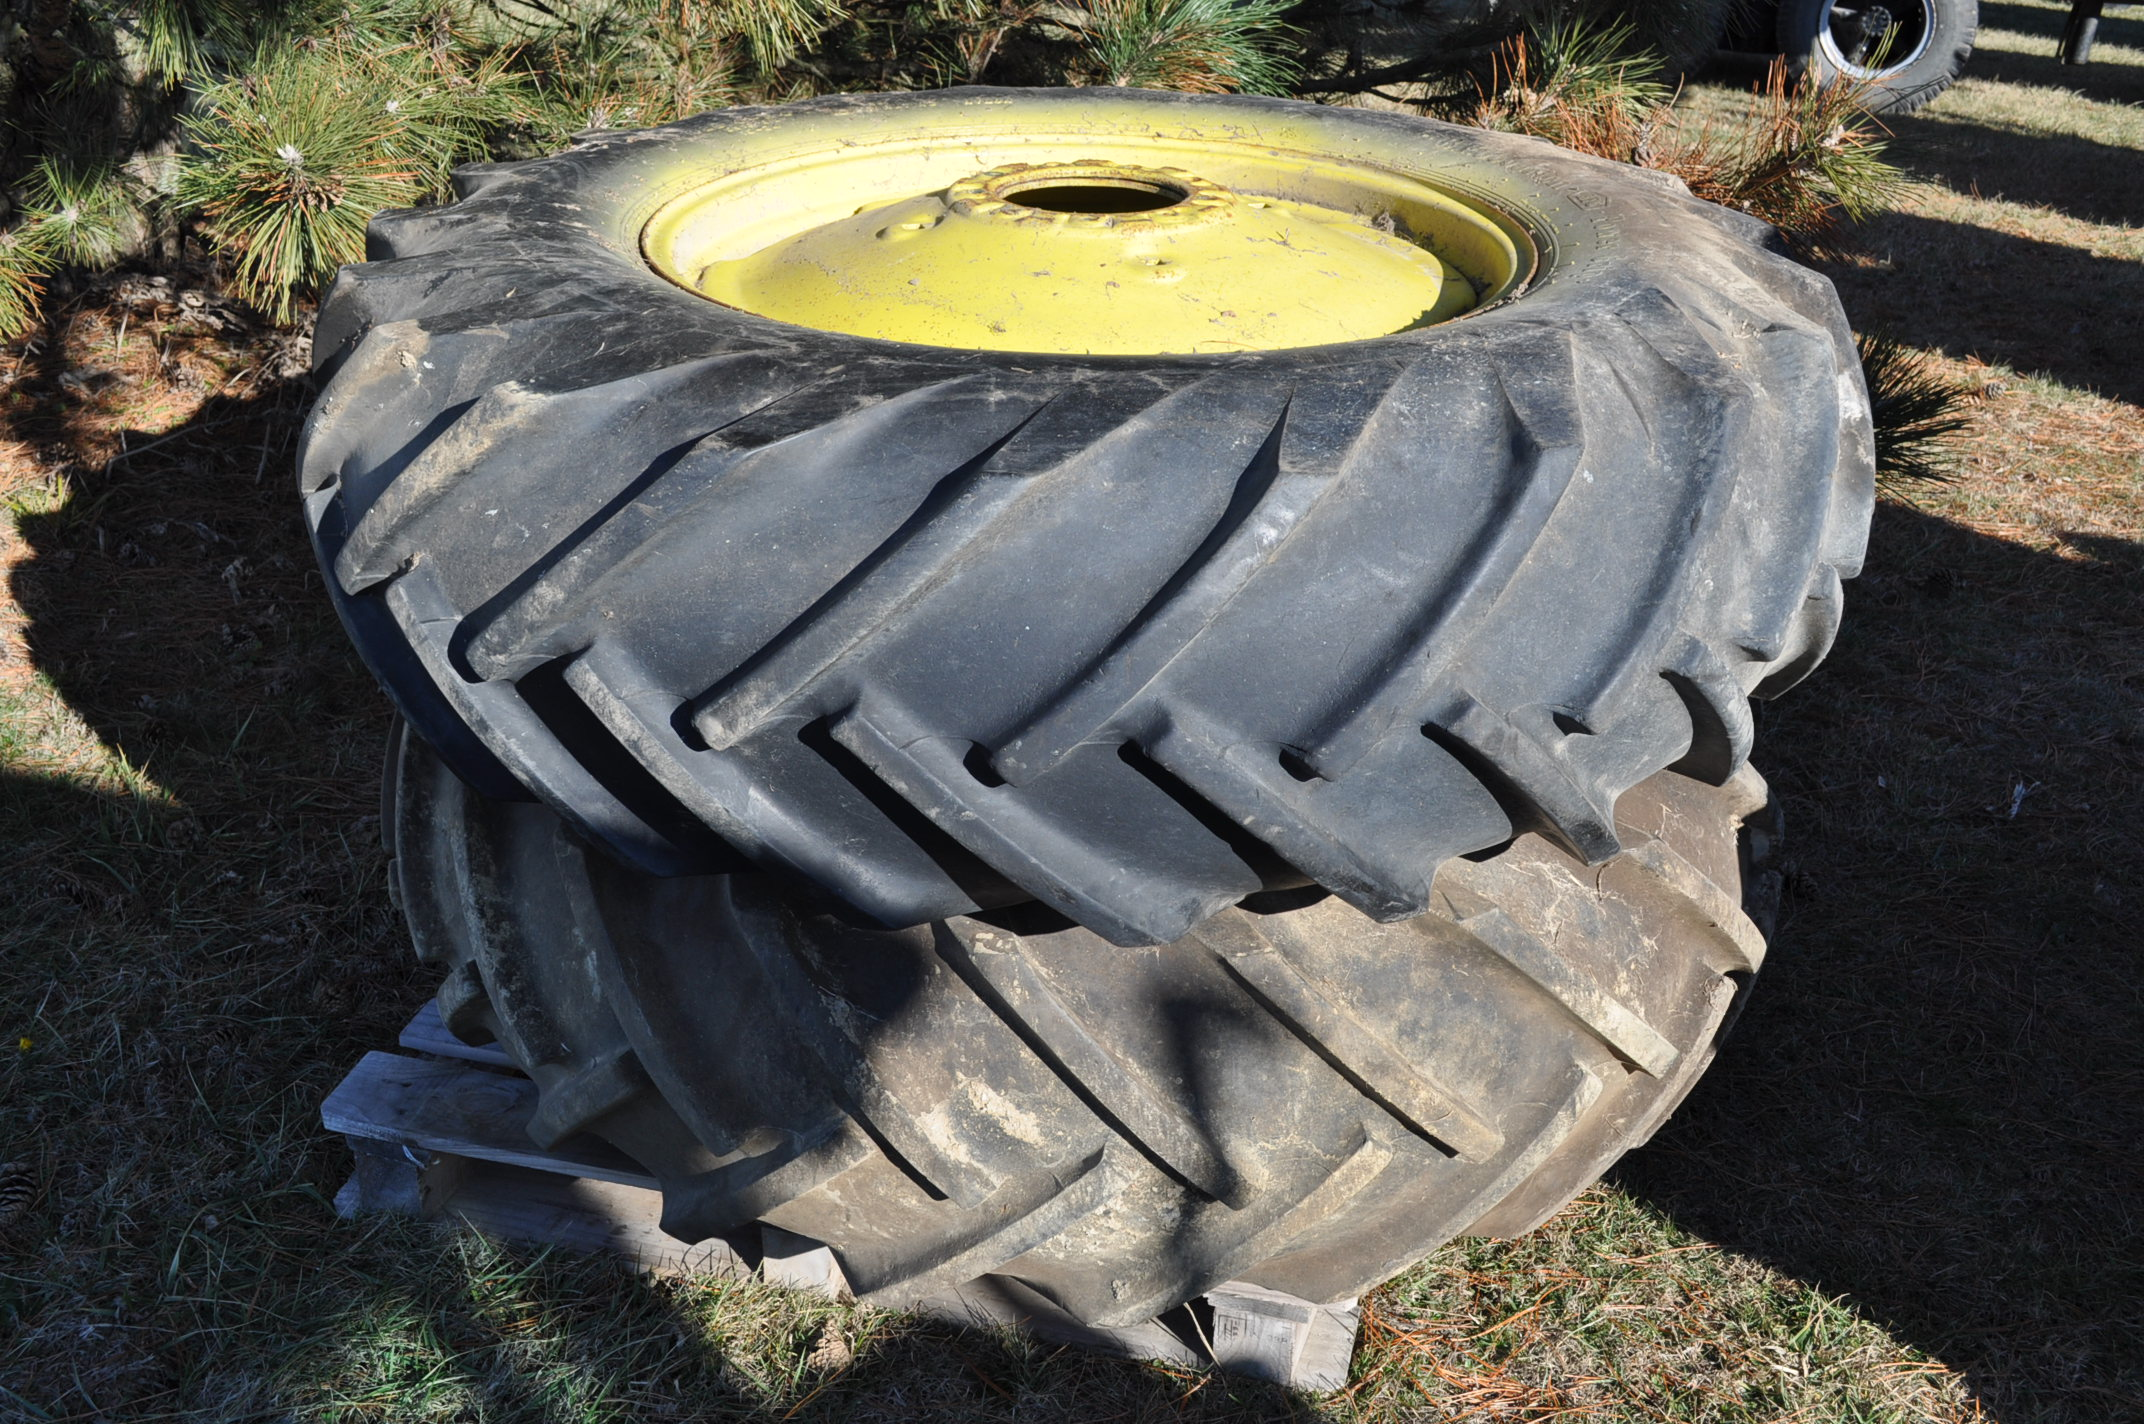 John Deere 4030 tractor, diesel, 18.4-34 rear duals, rear wts, 9.5-15 front, 4-post canopy, Syncro, - Image 24 of 26